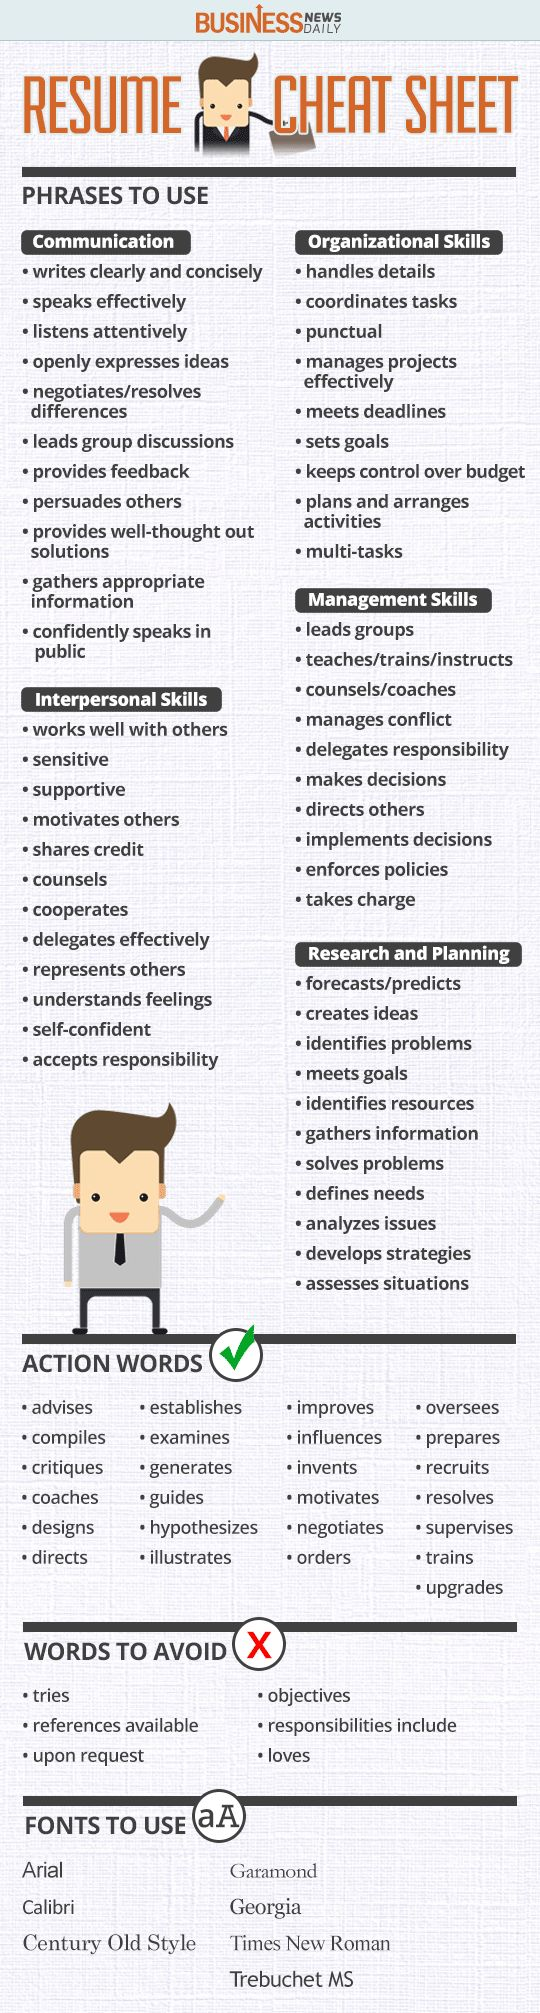 Opposenewapstandardsus  Marvellous  Ideas About Resume On Pinterest  Cv Format Resume Cv And  With Interesting Resume Cheat Sheet Infographic Andrews Almost Done With A Complete Unit On Employment Which With Delectable Whats A Cover Letter For A Resume Also Cashier Job Duties For Resume In Addition Write My Resume For Me And How To Write An Objective For Resume As Well As Margins On A Resume Additionally Change Management Resume From Pinterestcom With Opposenewapstandardsus  Interesting  Ideas About Resume On Pinterest  Cv Format Resume Cv And  With Delectable Resume Cheat Sheet Infographic Andrews Almost Done With A Complete Unit On Employment Which And Marvellous Whats A Cover Letter For A Resume Also Cashier Job Duties For Resume In Addition Write My Resume For Me From Pinterestcom